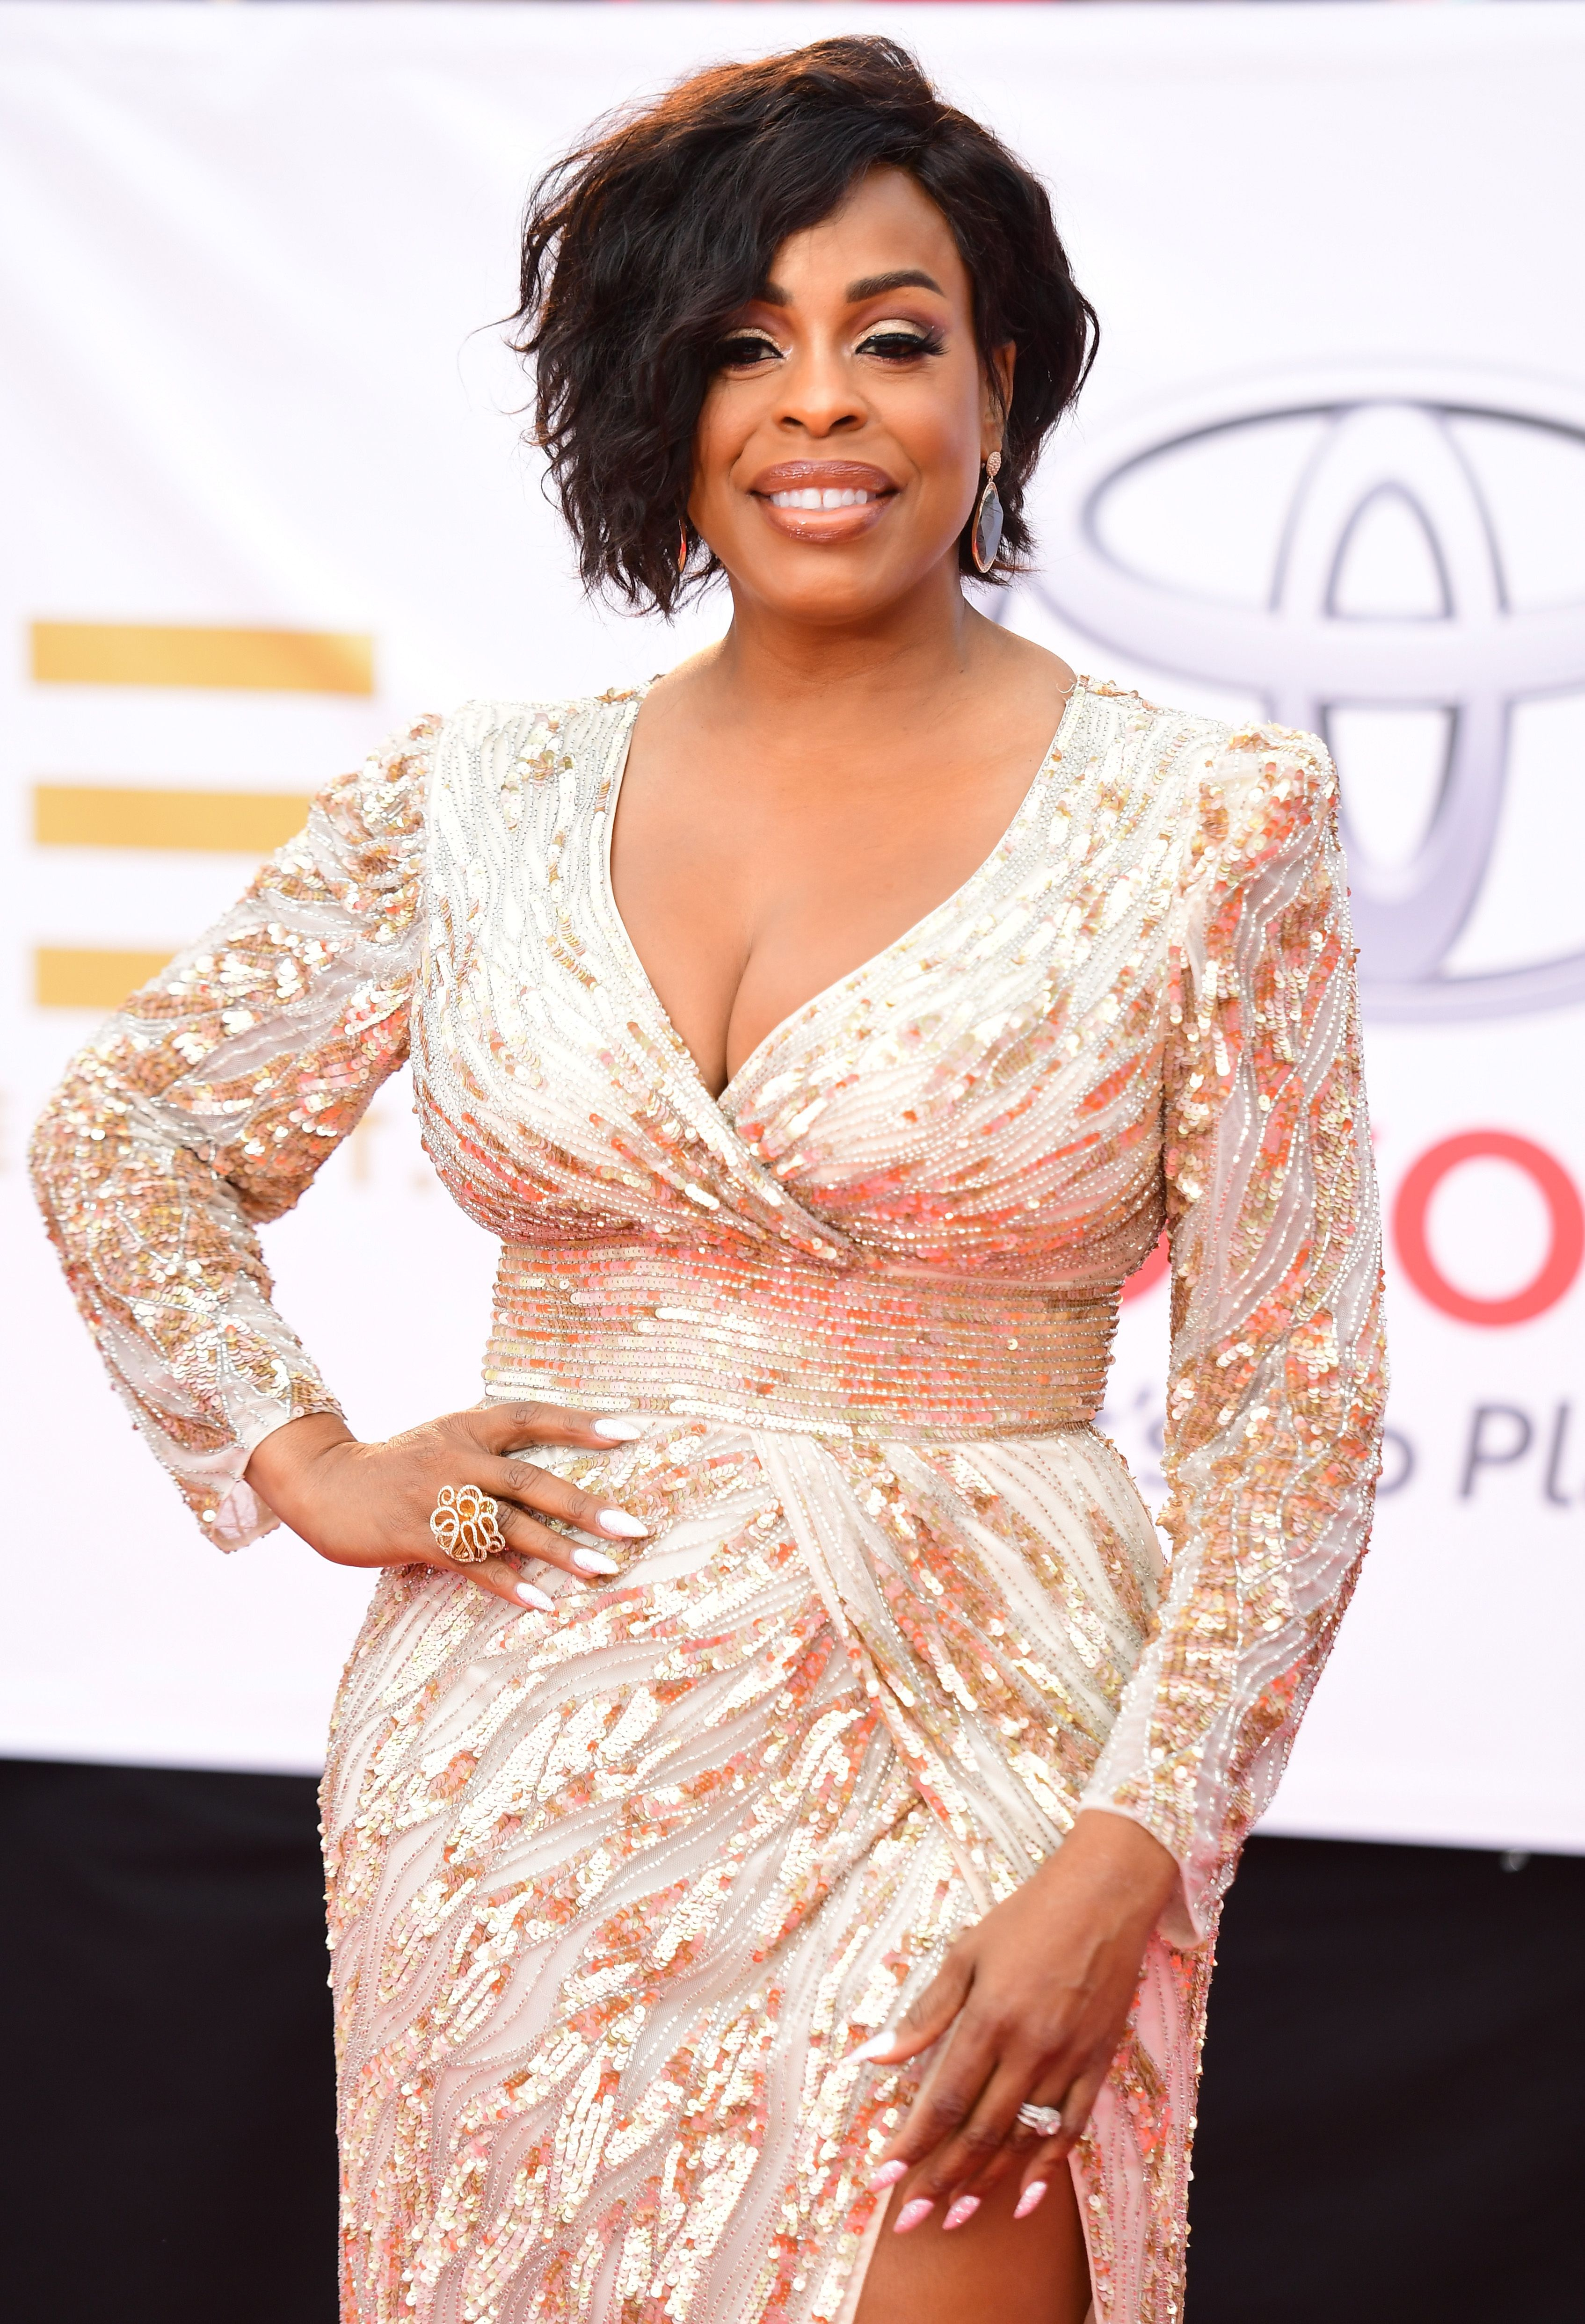 Niecy Nash at the 49th NAACP Image Awards at Pasadena Civic Auditorium on January 15, 2018 in California | Photo: Getty Images